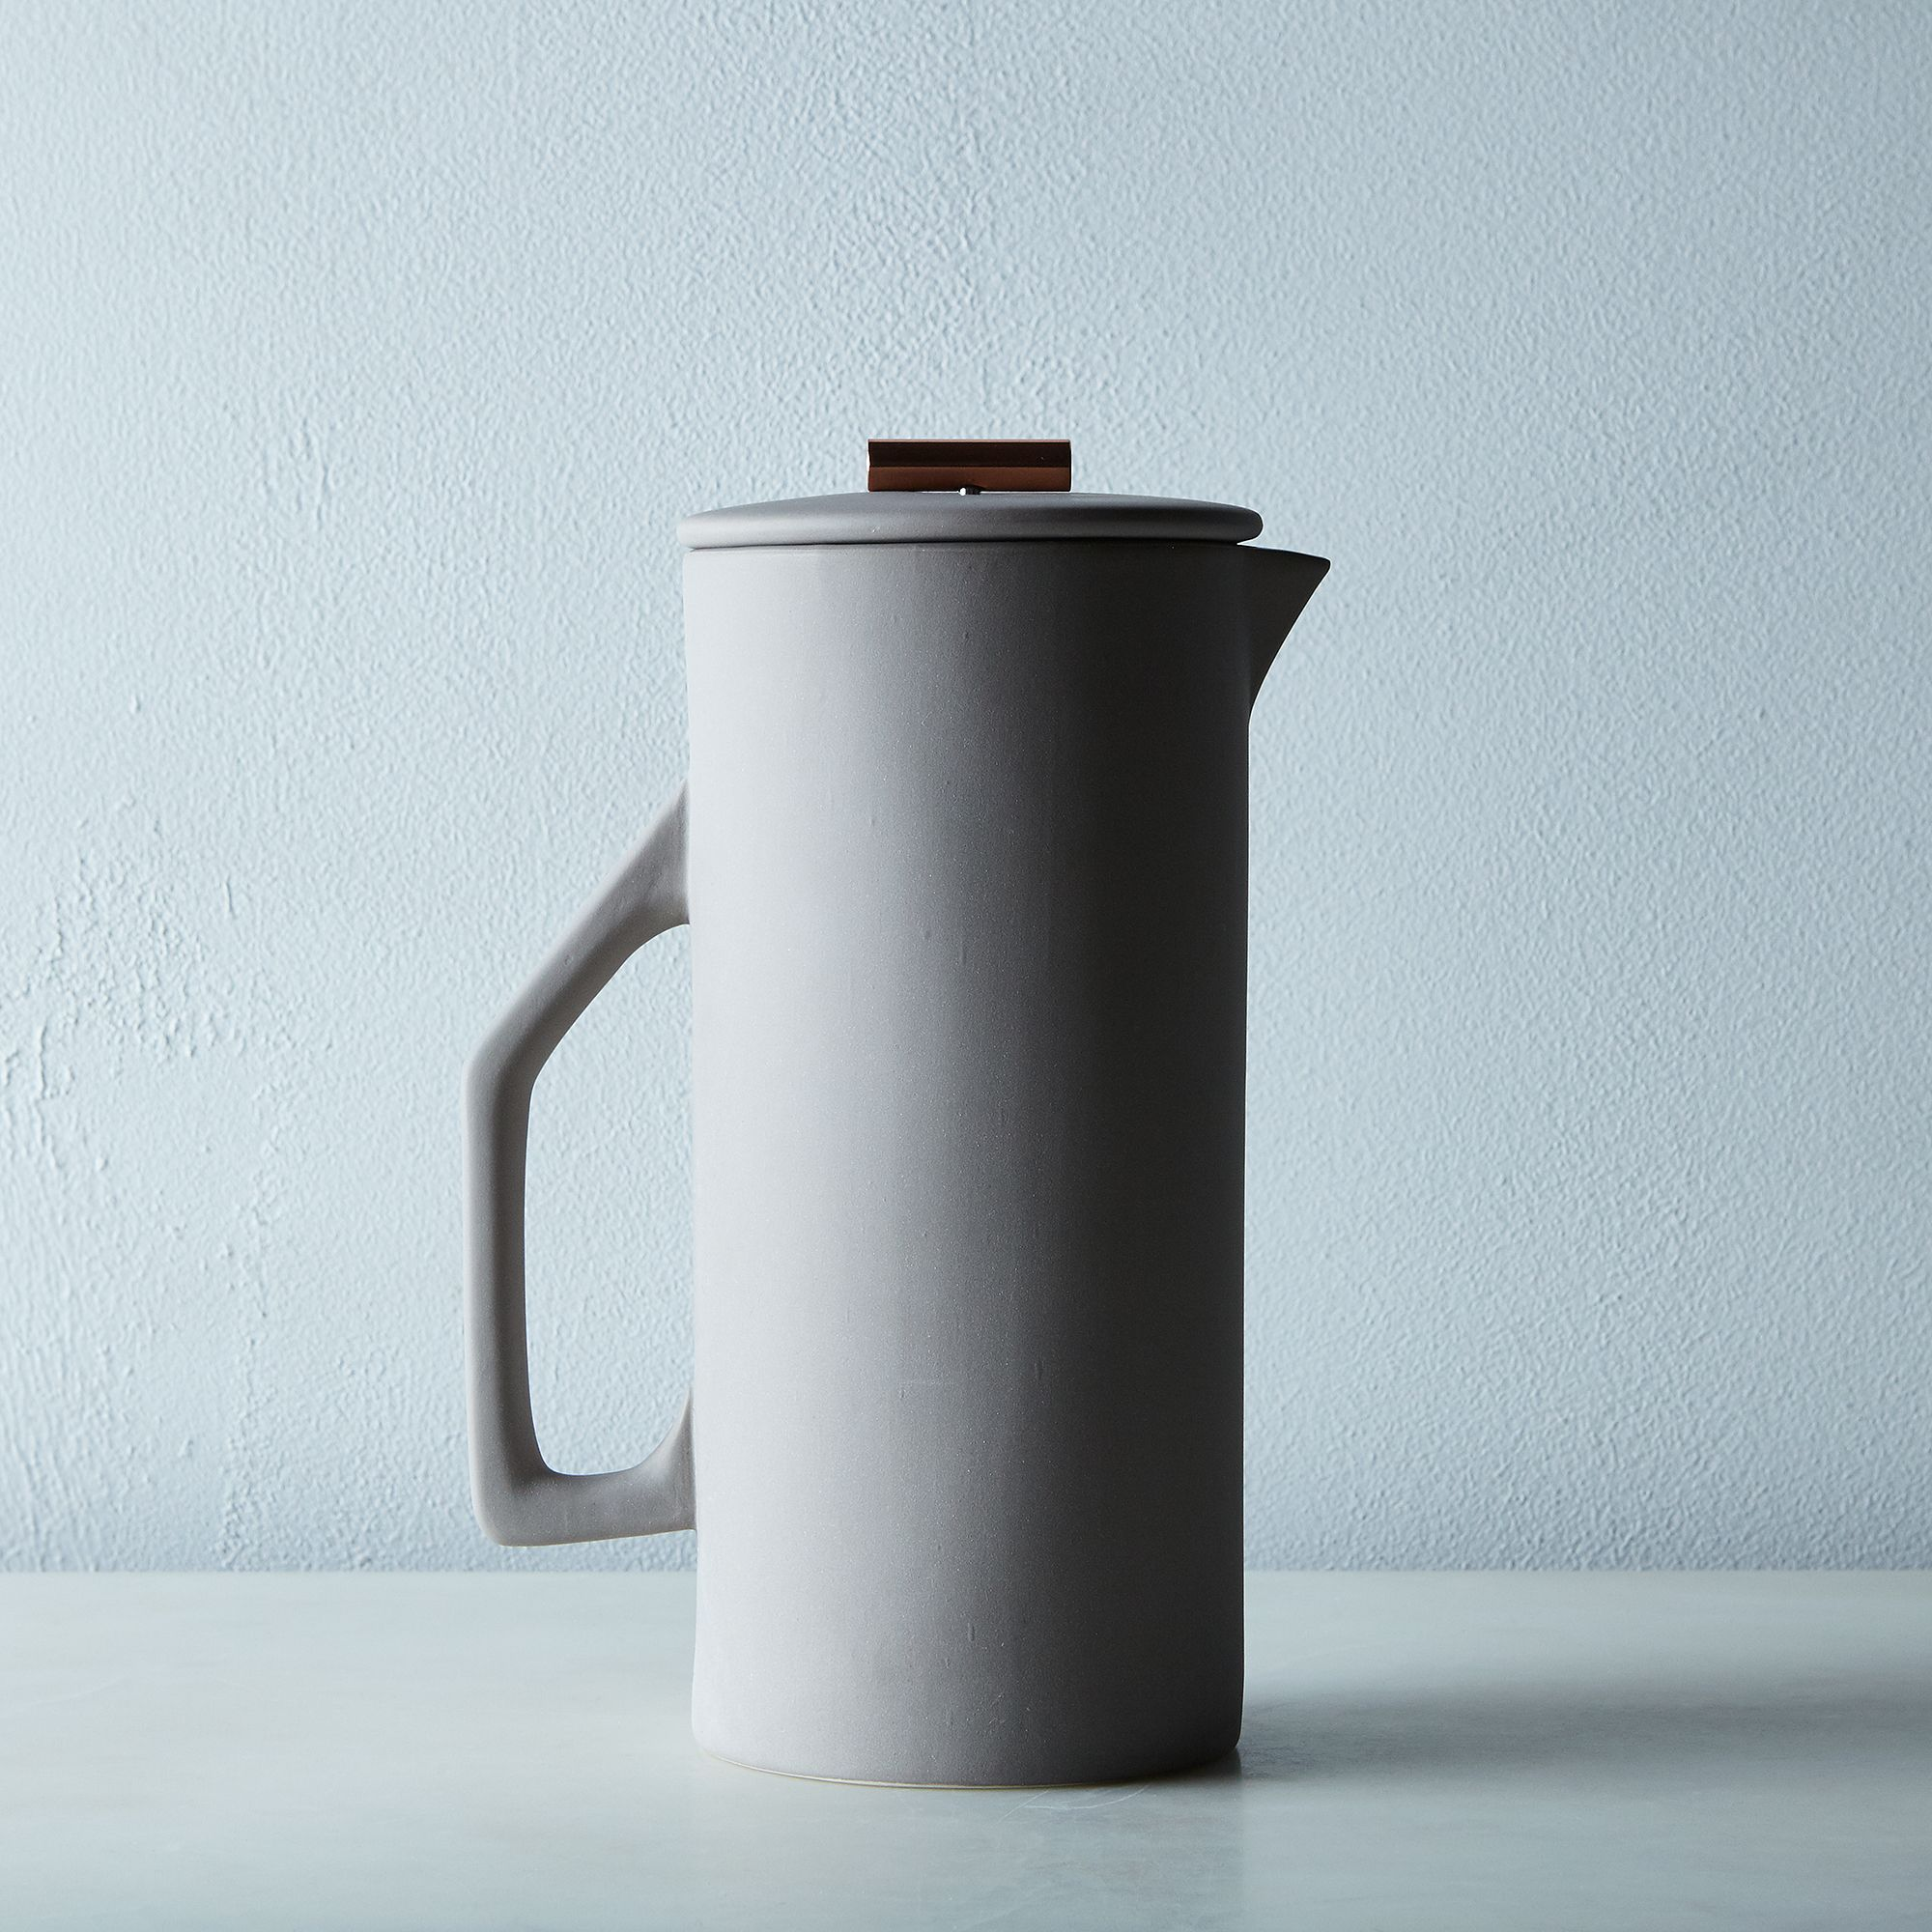 Ae52082c 17f8 4421 9a39 d18c459e8b75  2016 0223 yield design french press grey 50oz silo rocky luten 007